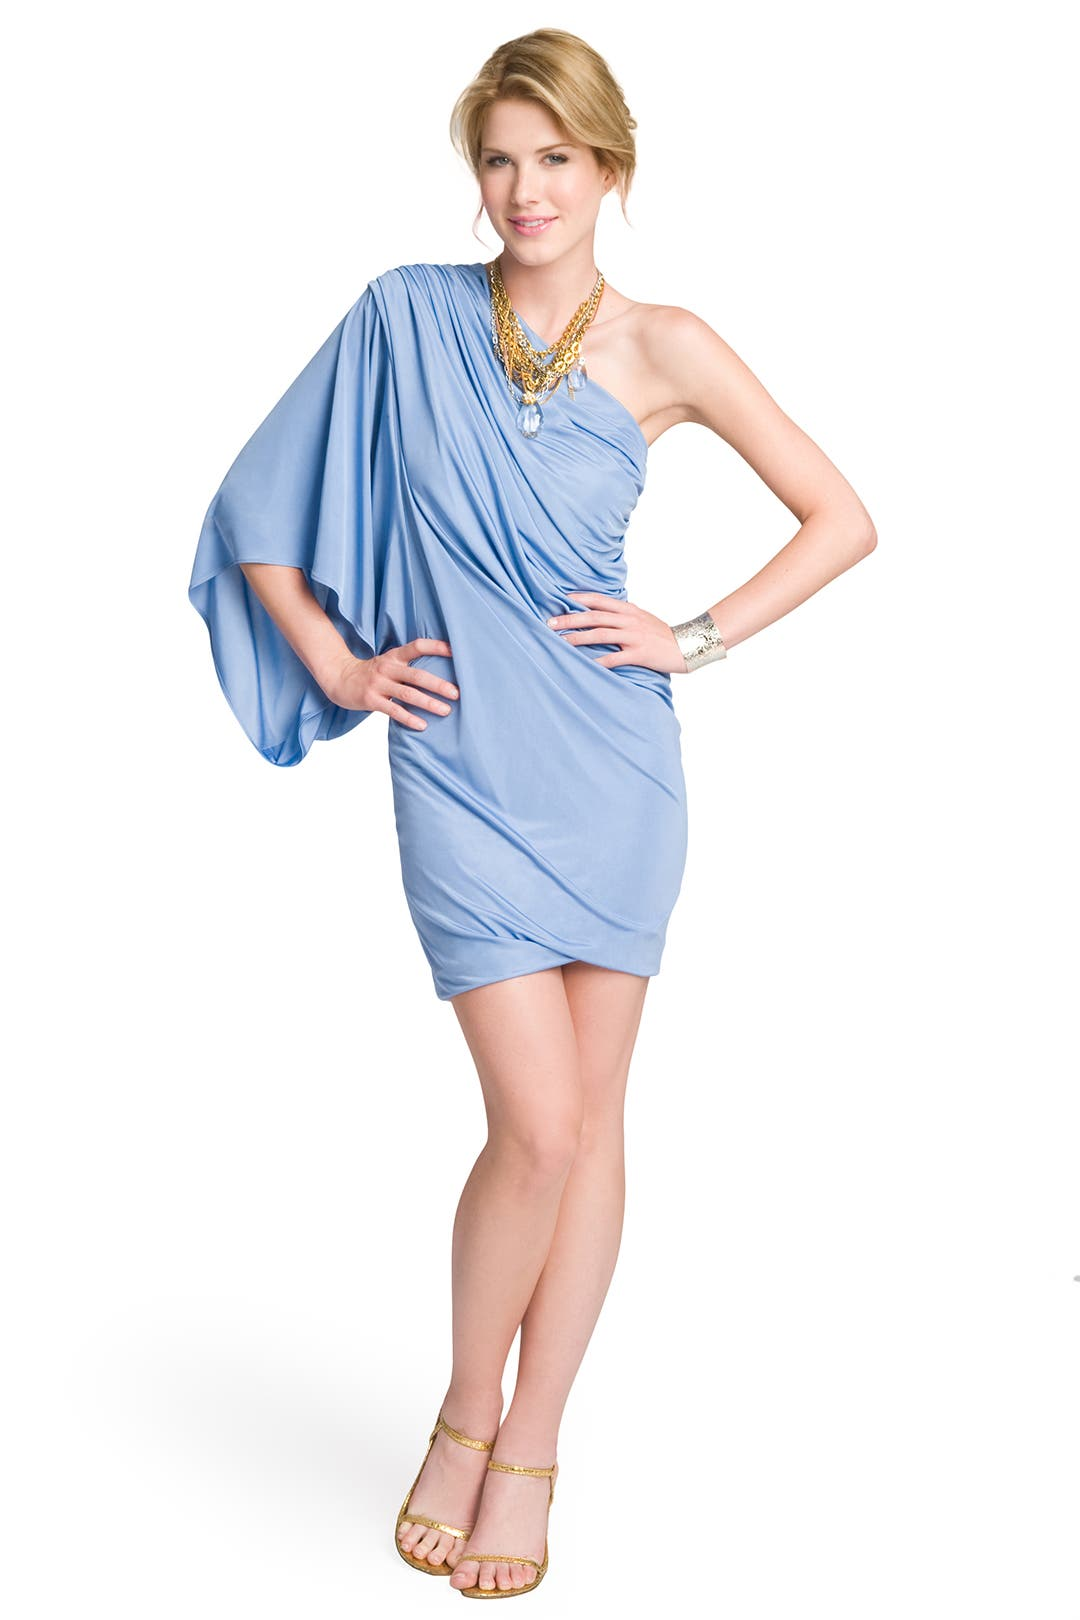 Sky Shoulder Dress by Yigal Azrouël